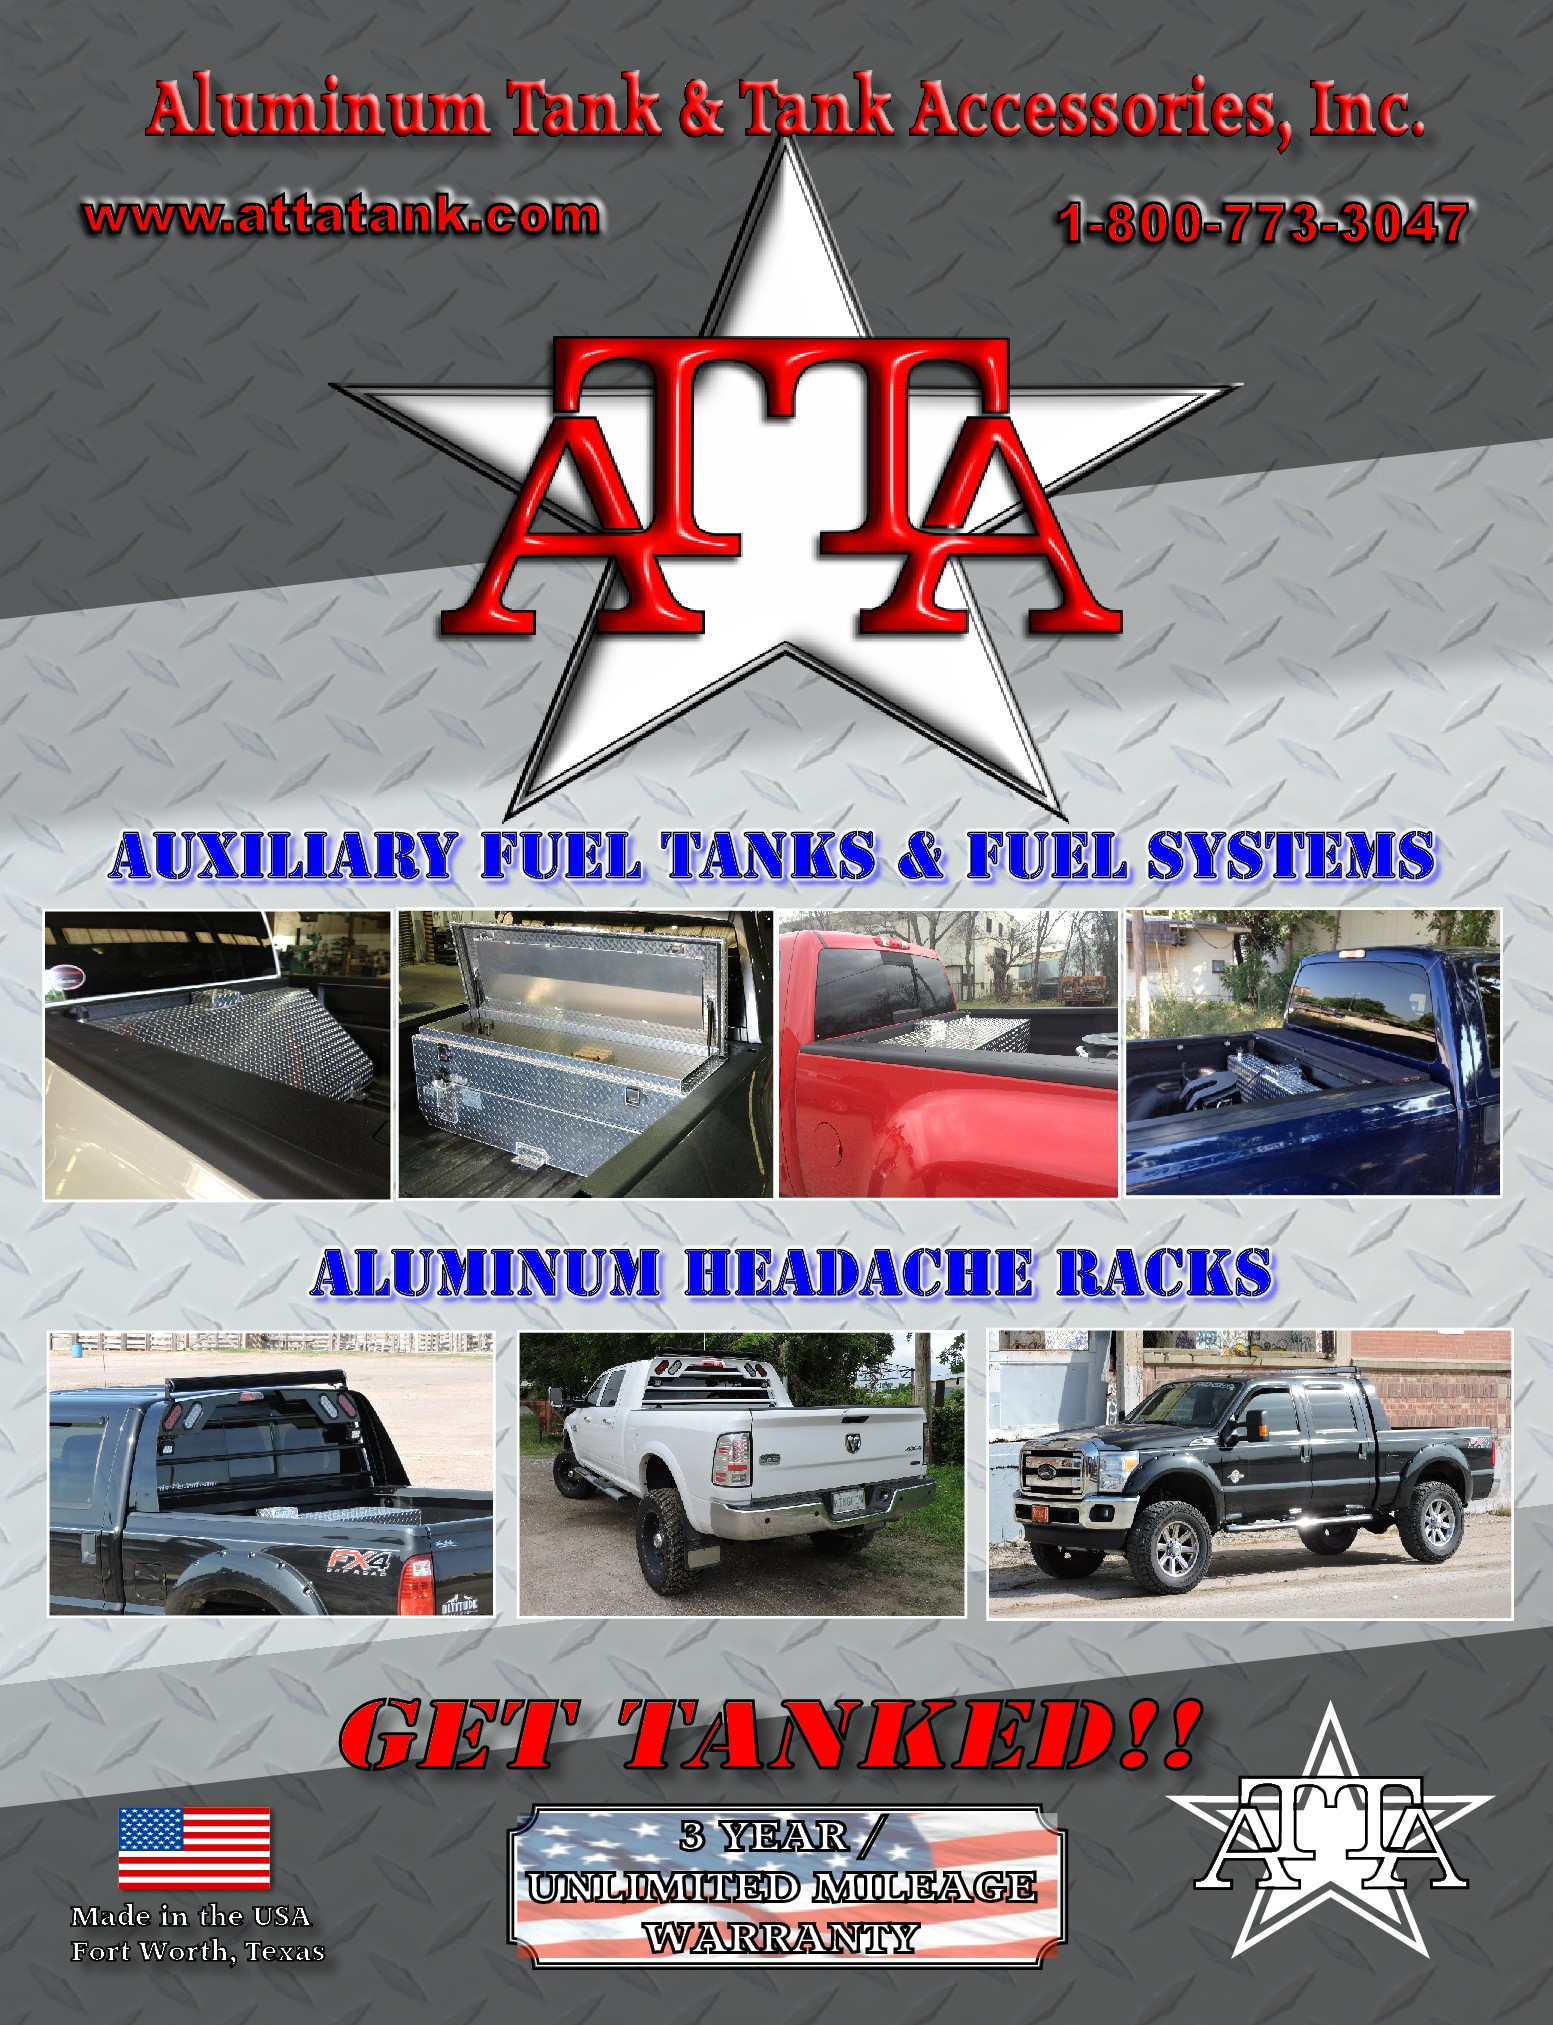 ATTA Catalog Cover